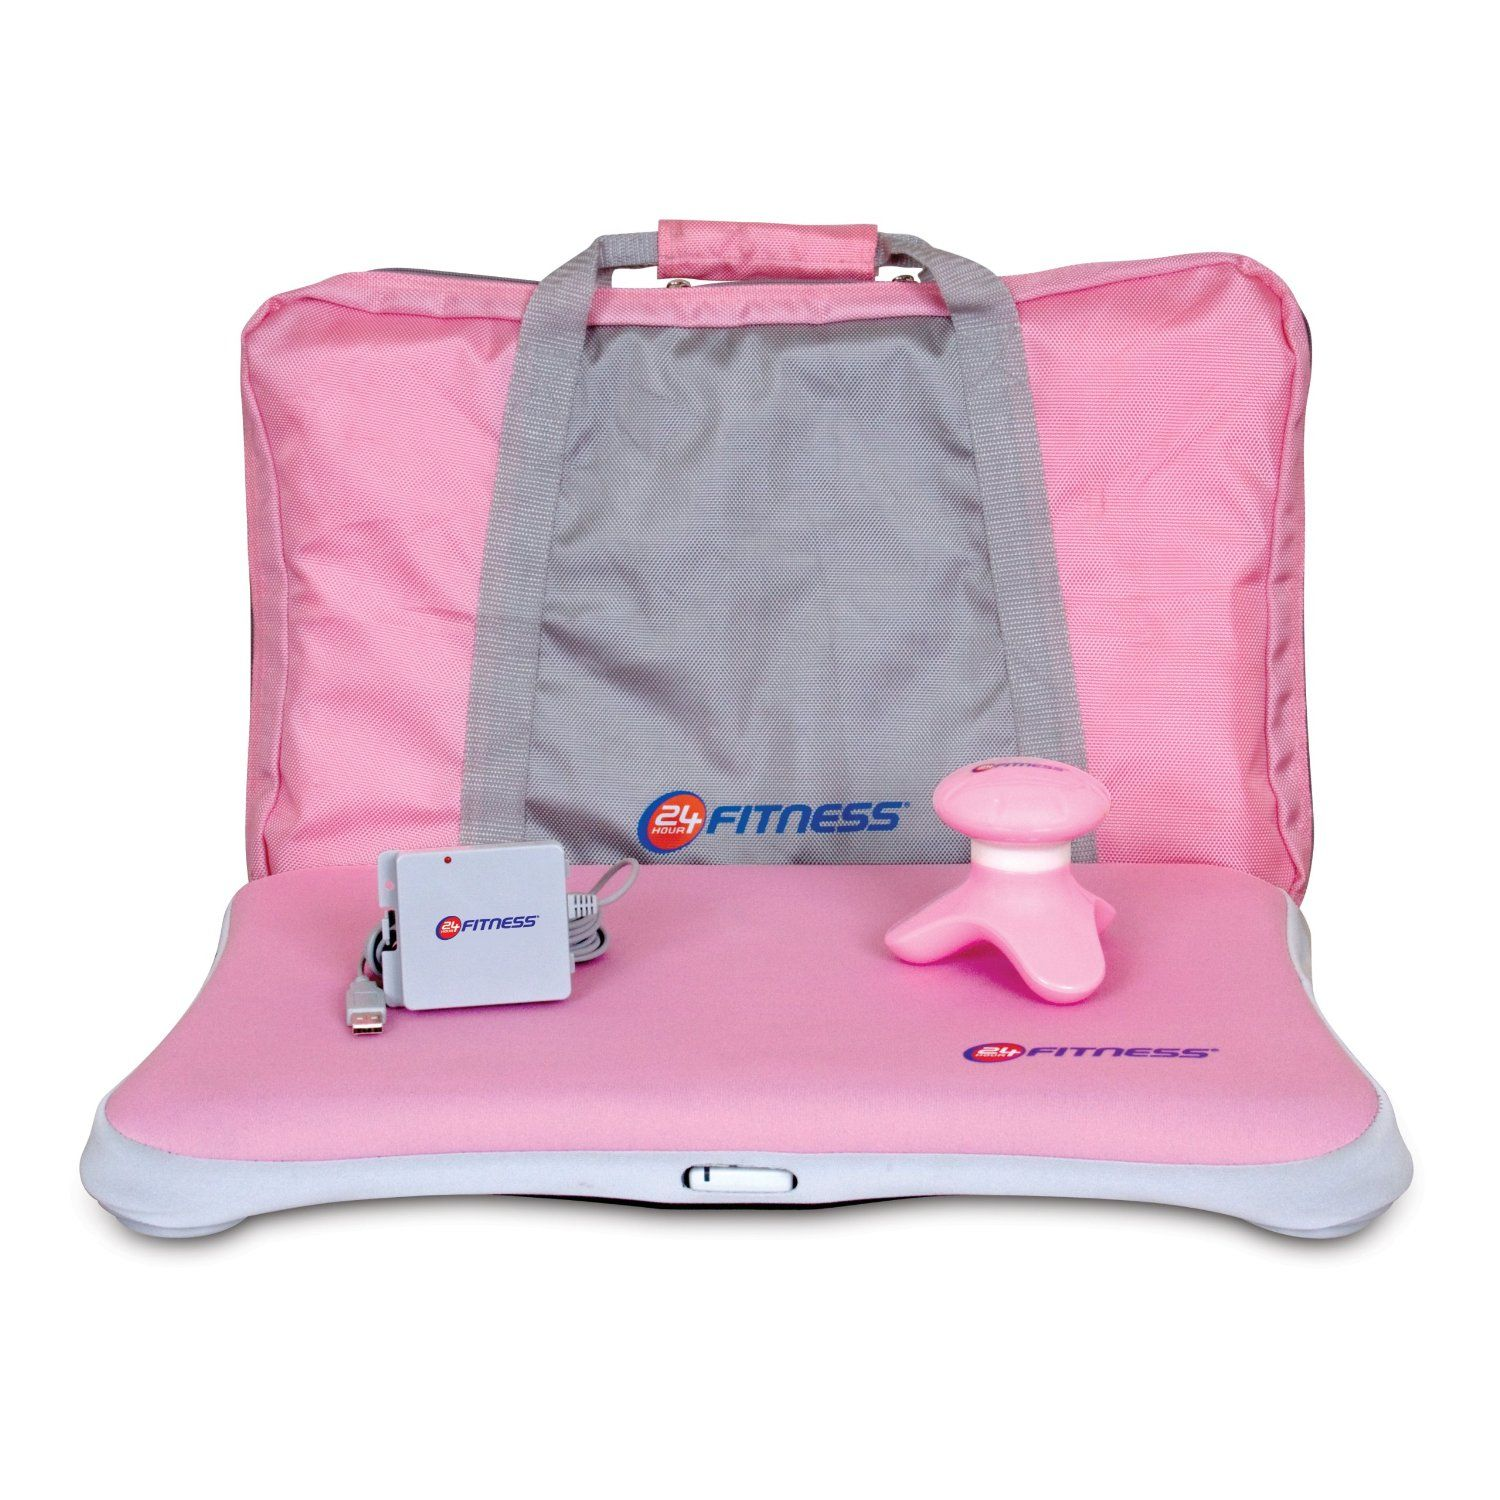 Dreamgear wii 4in1 24 hour fitness bundle pink 24